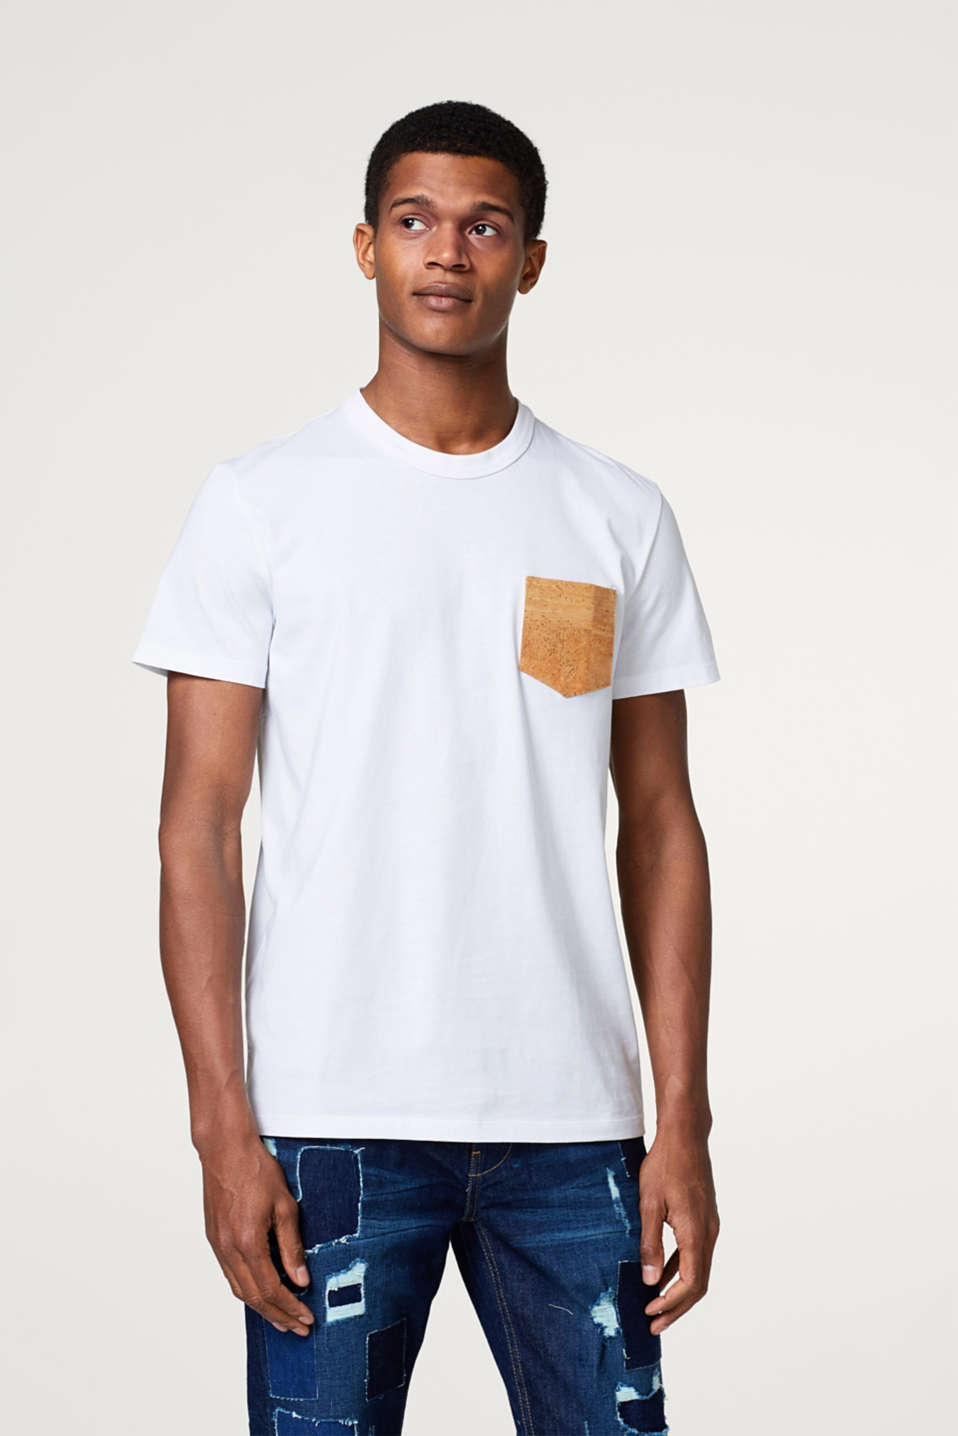 Esprit - Jersey T-shirt with a patch breast pocket made of cork